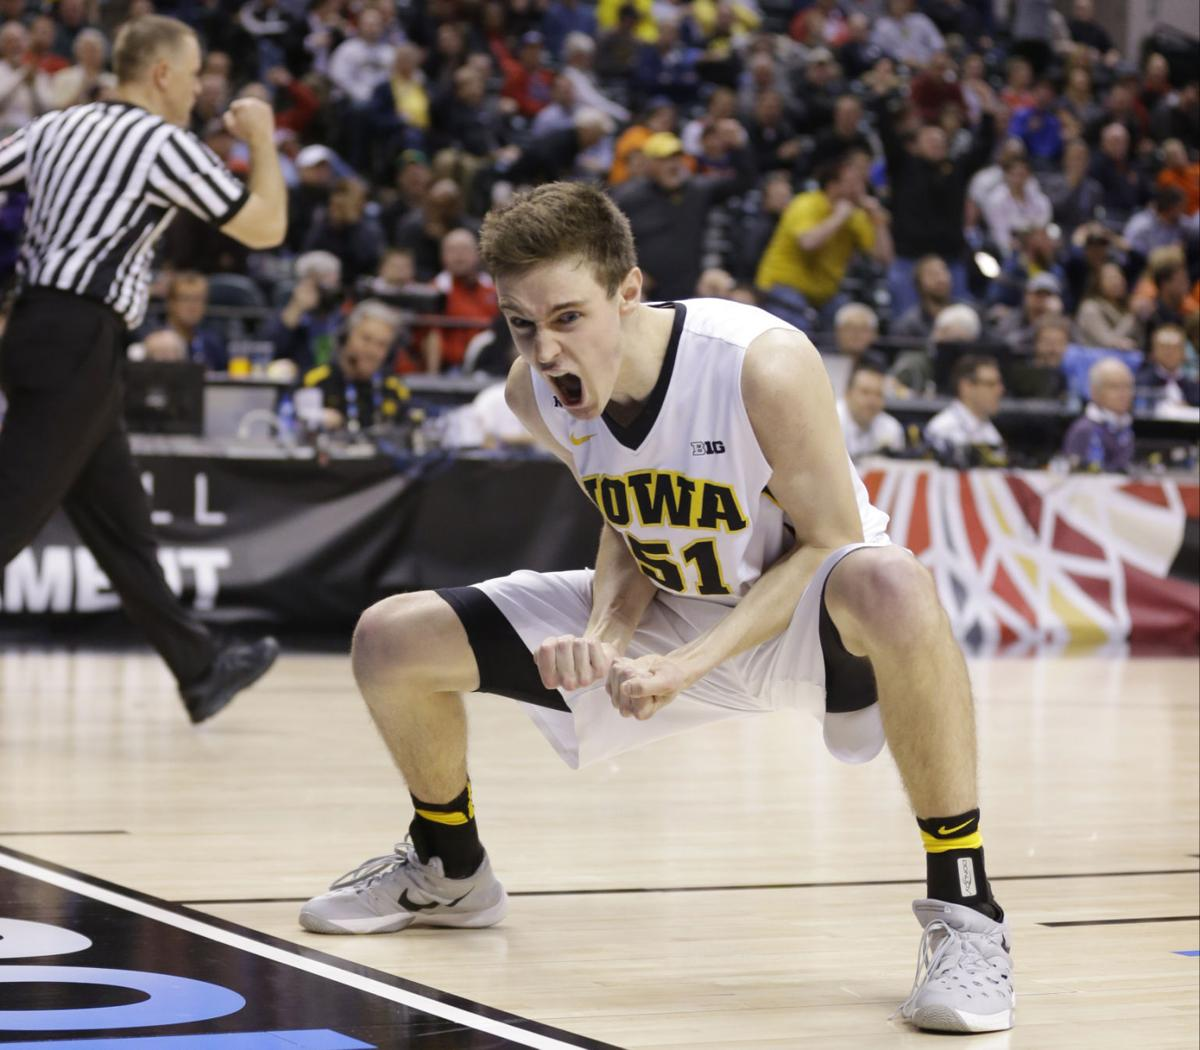 brooklyn notes hawkeyes baer fulfills lifelong dream iowa nicholas baer